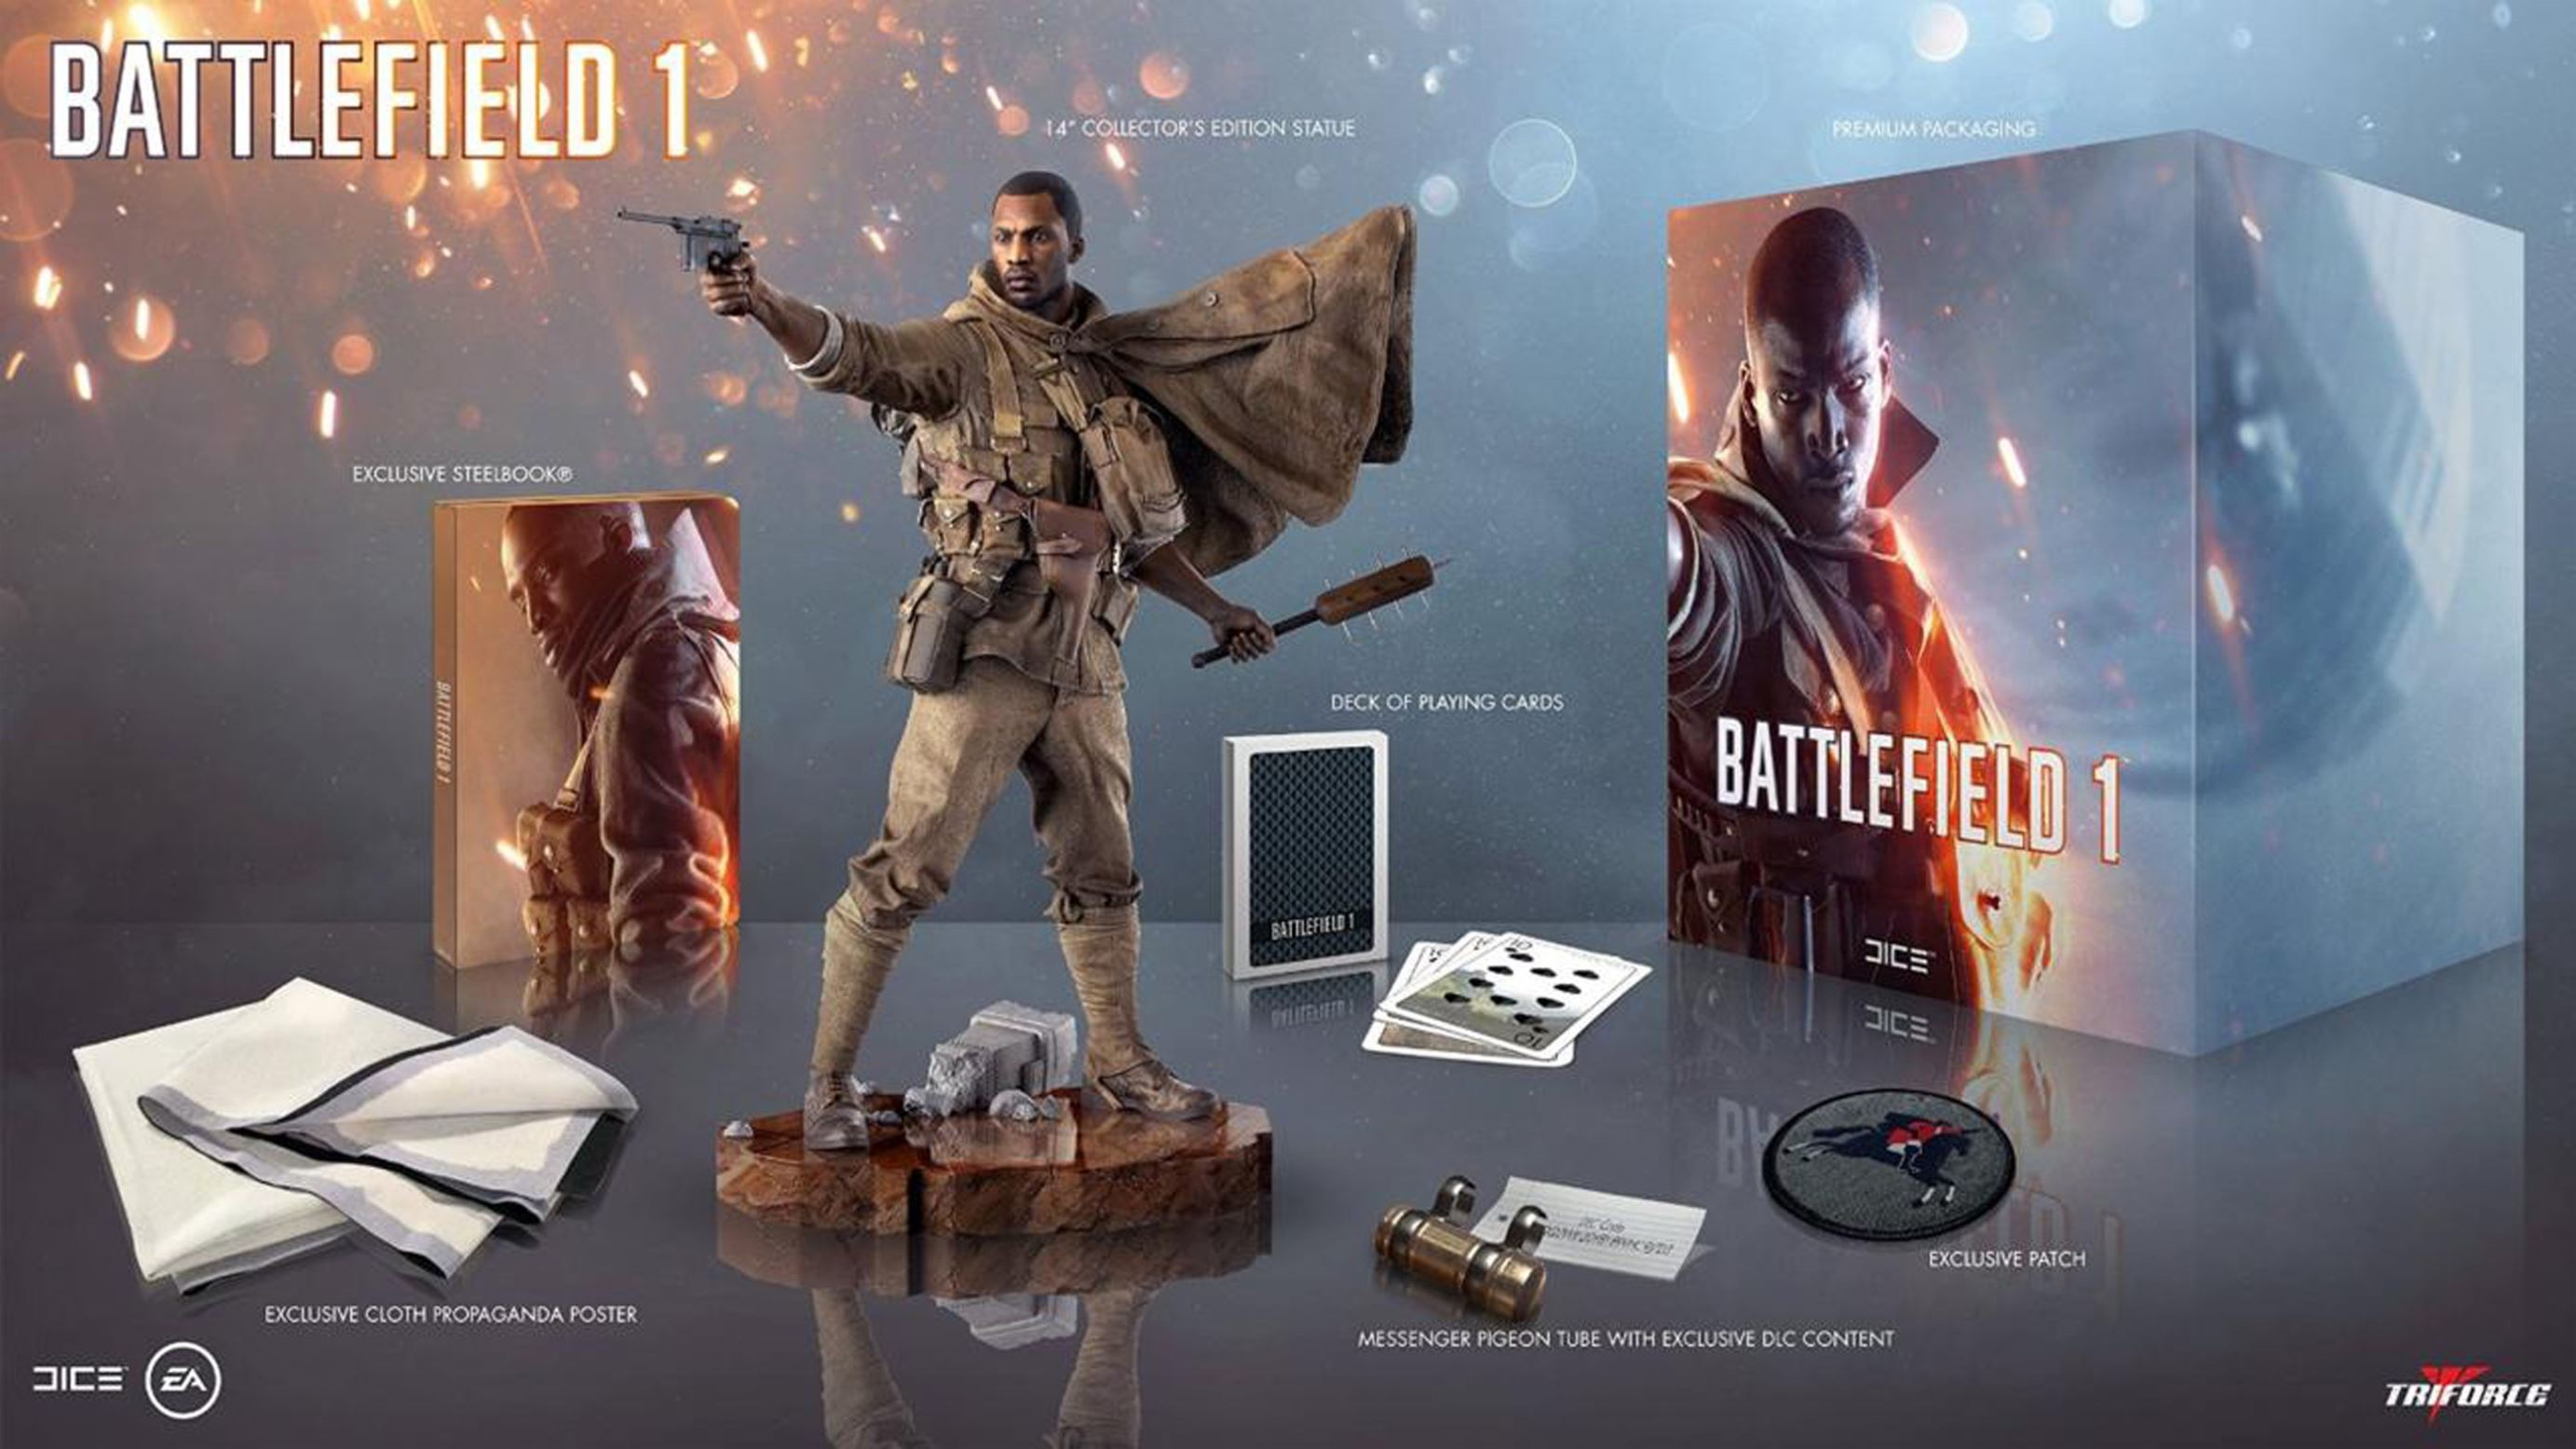 Battlefield 1 Collector's Deluxe Edition for Xbox One